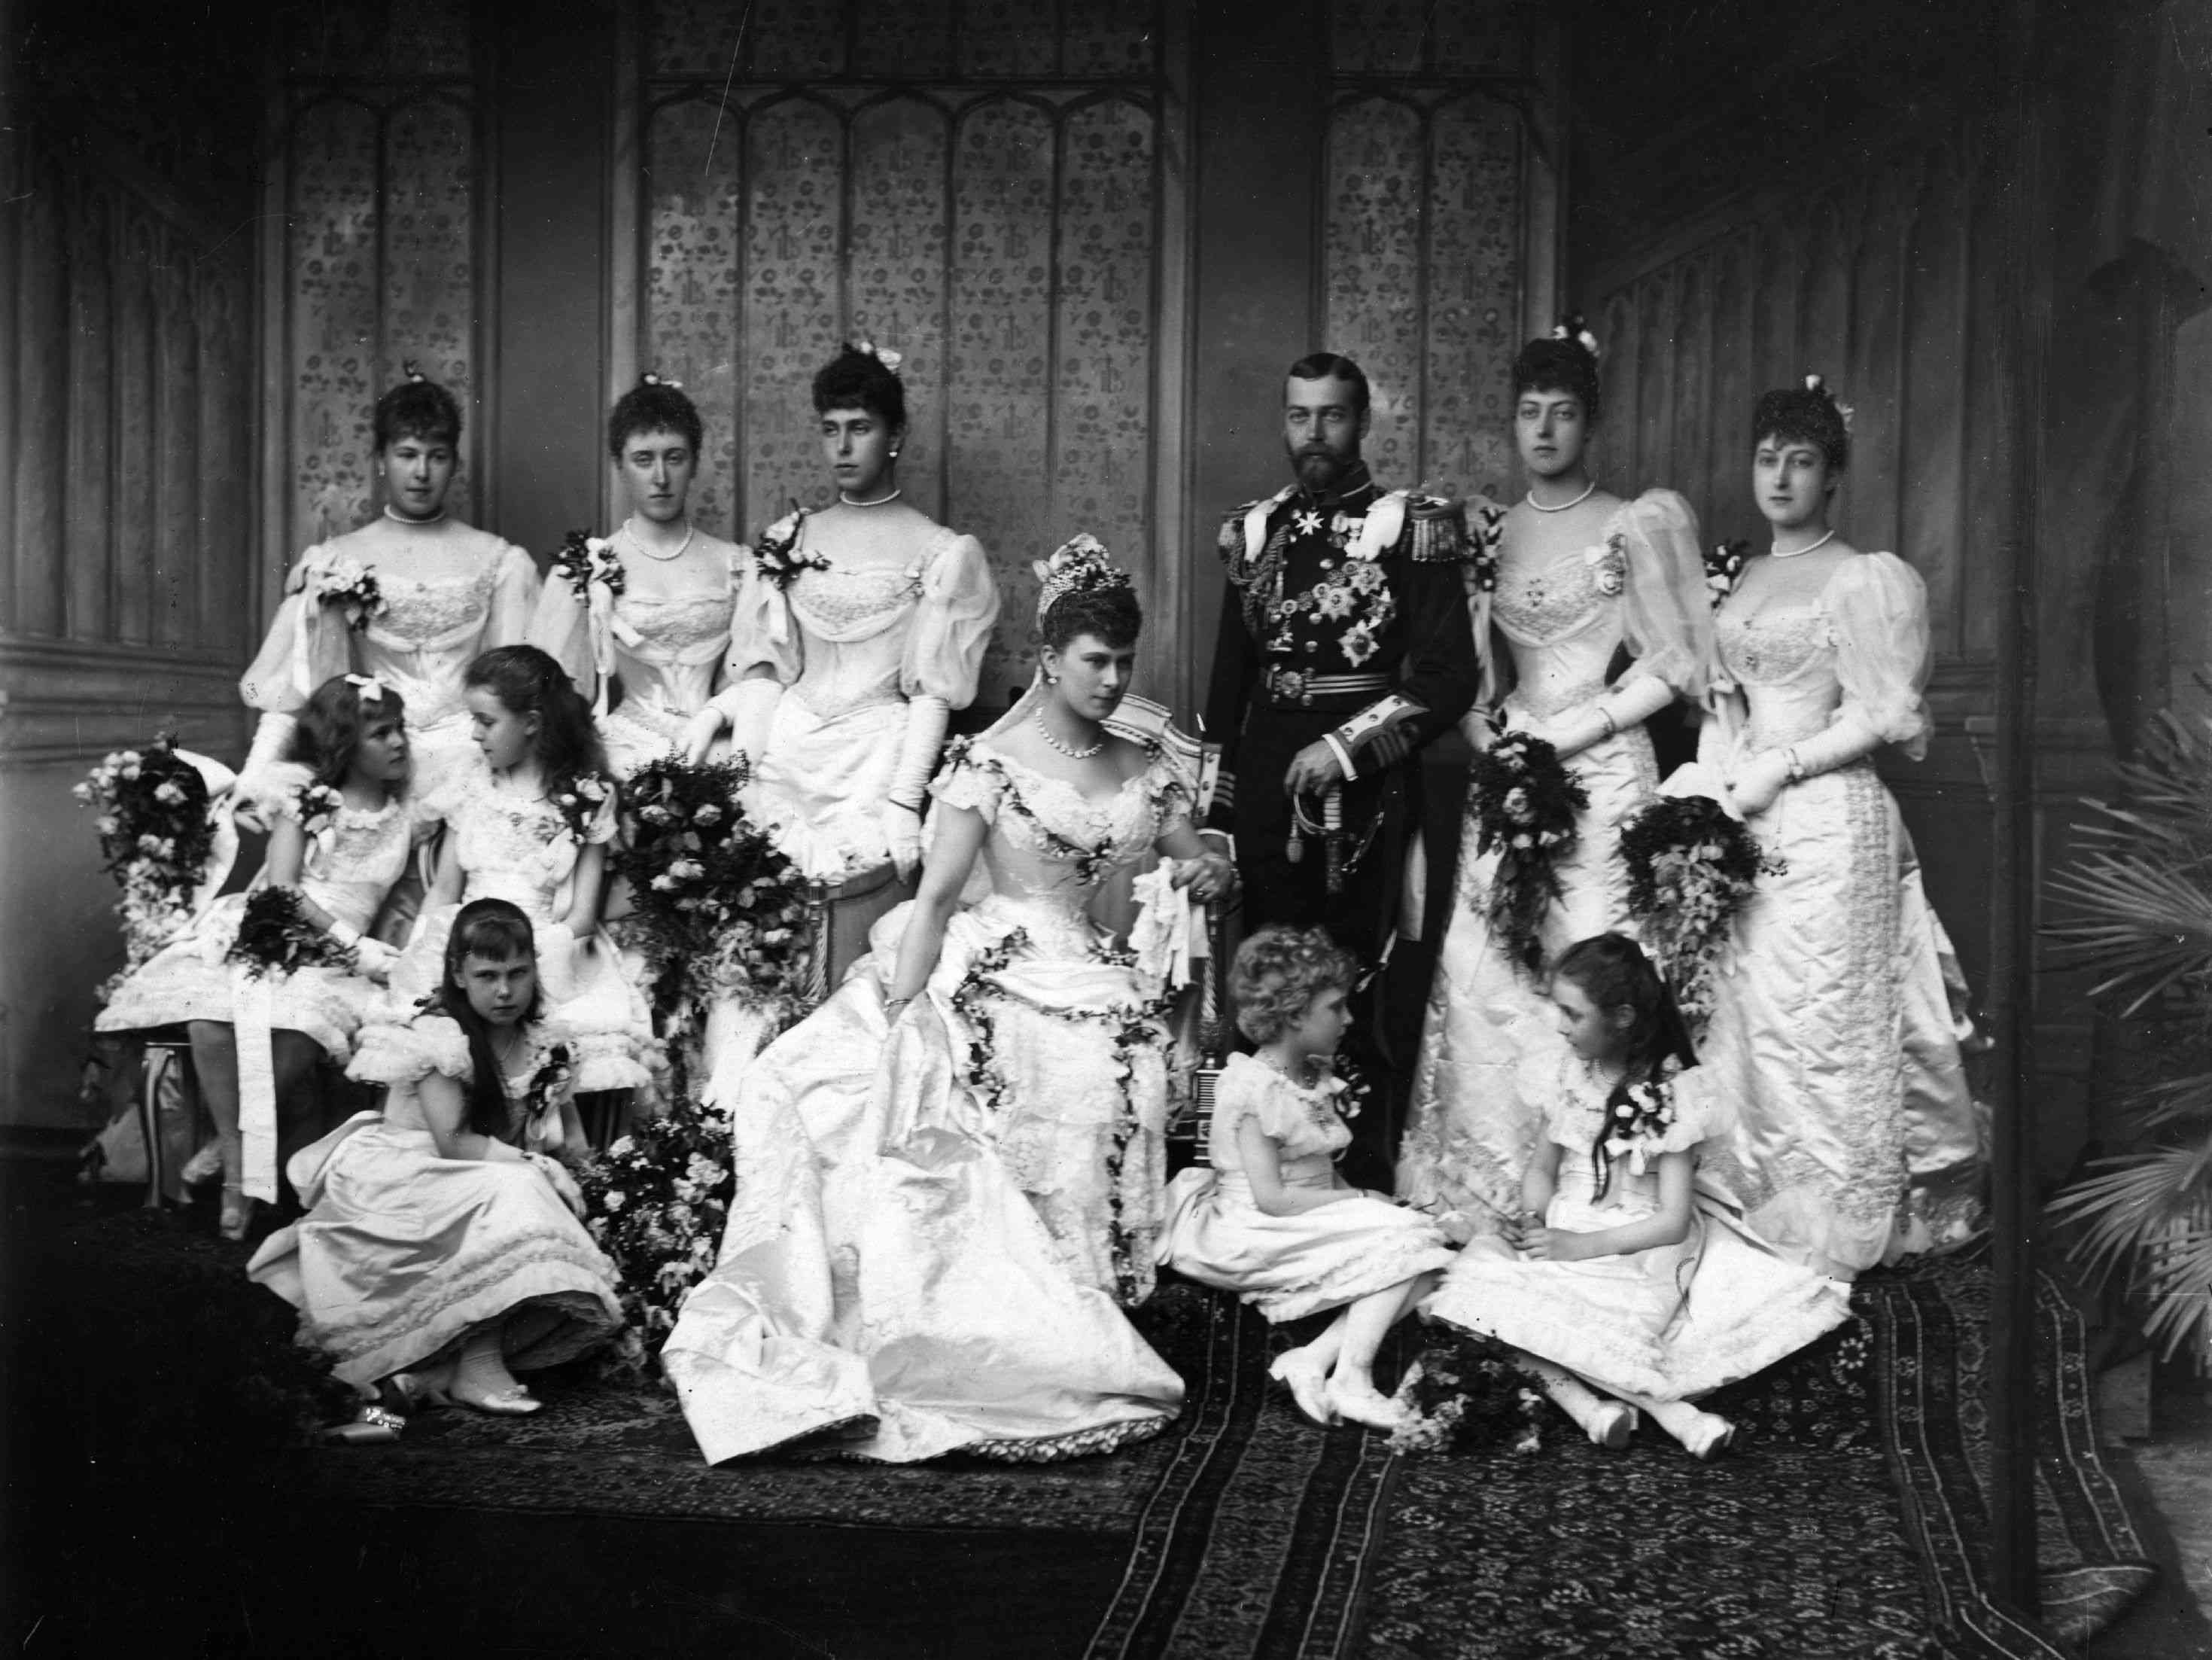 The wedding at Buckingham Palace of the Duke of York, later King George V and Princess Mary of Teck